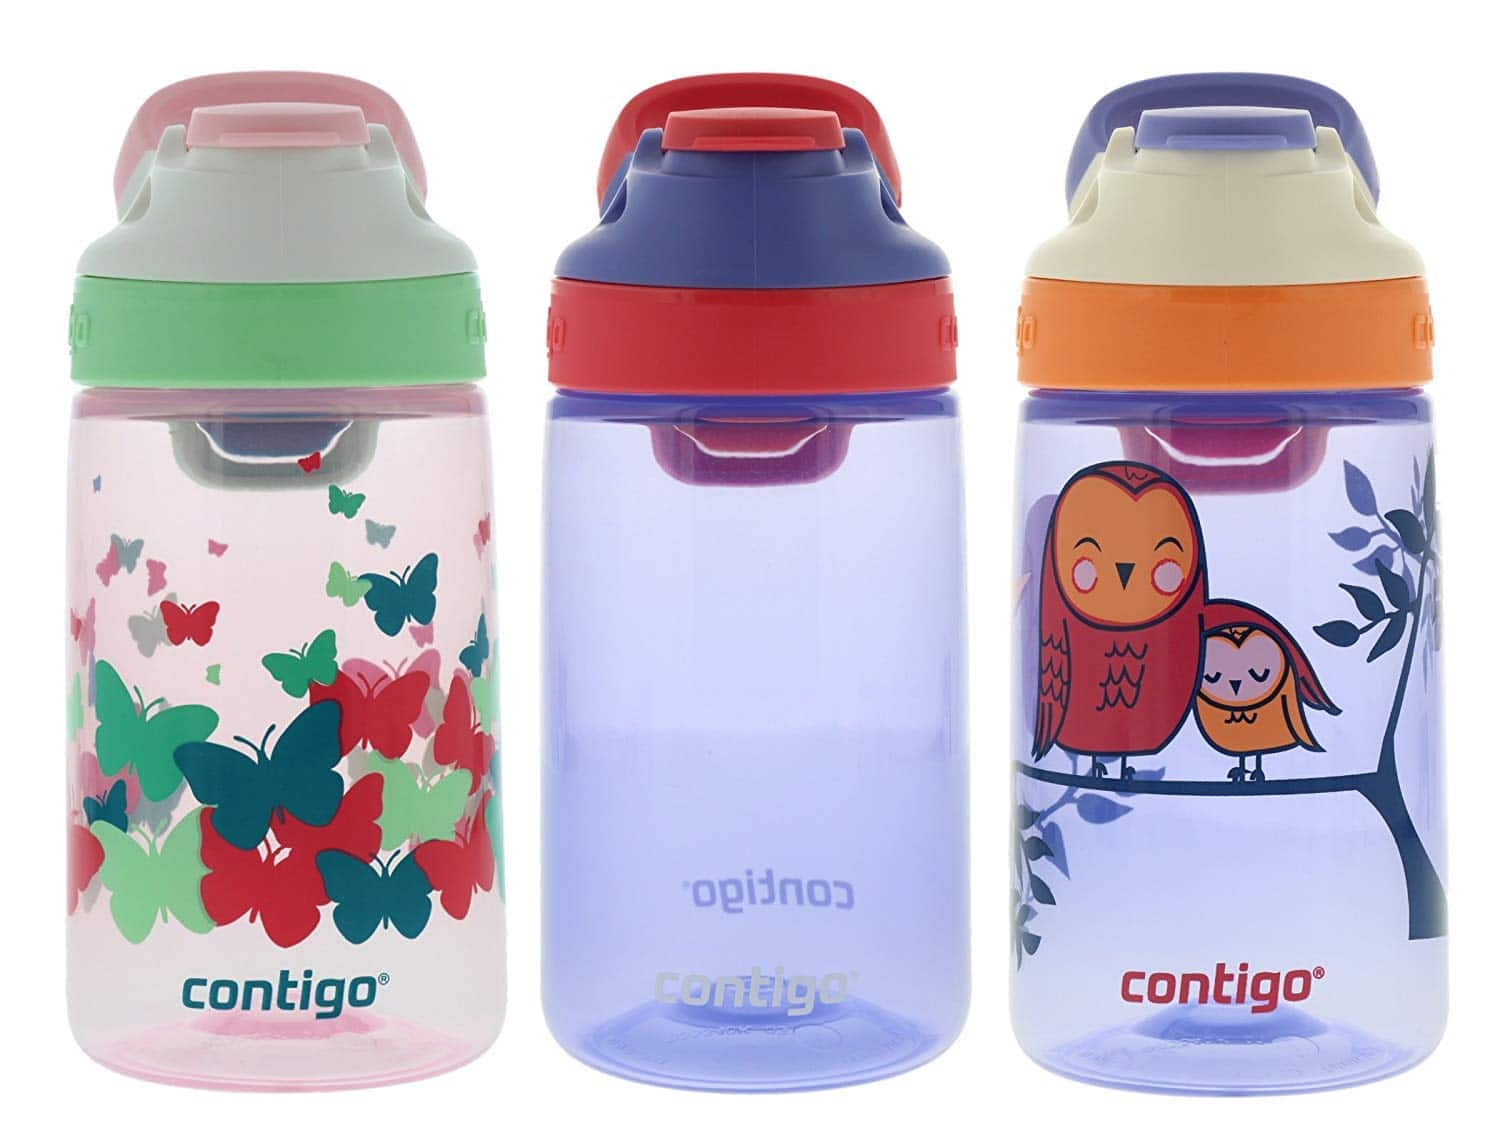 Contigo Water Bottles, 14oz Kids, Ballet/Wink/Love $12.98